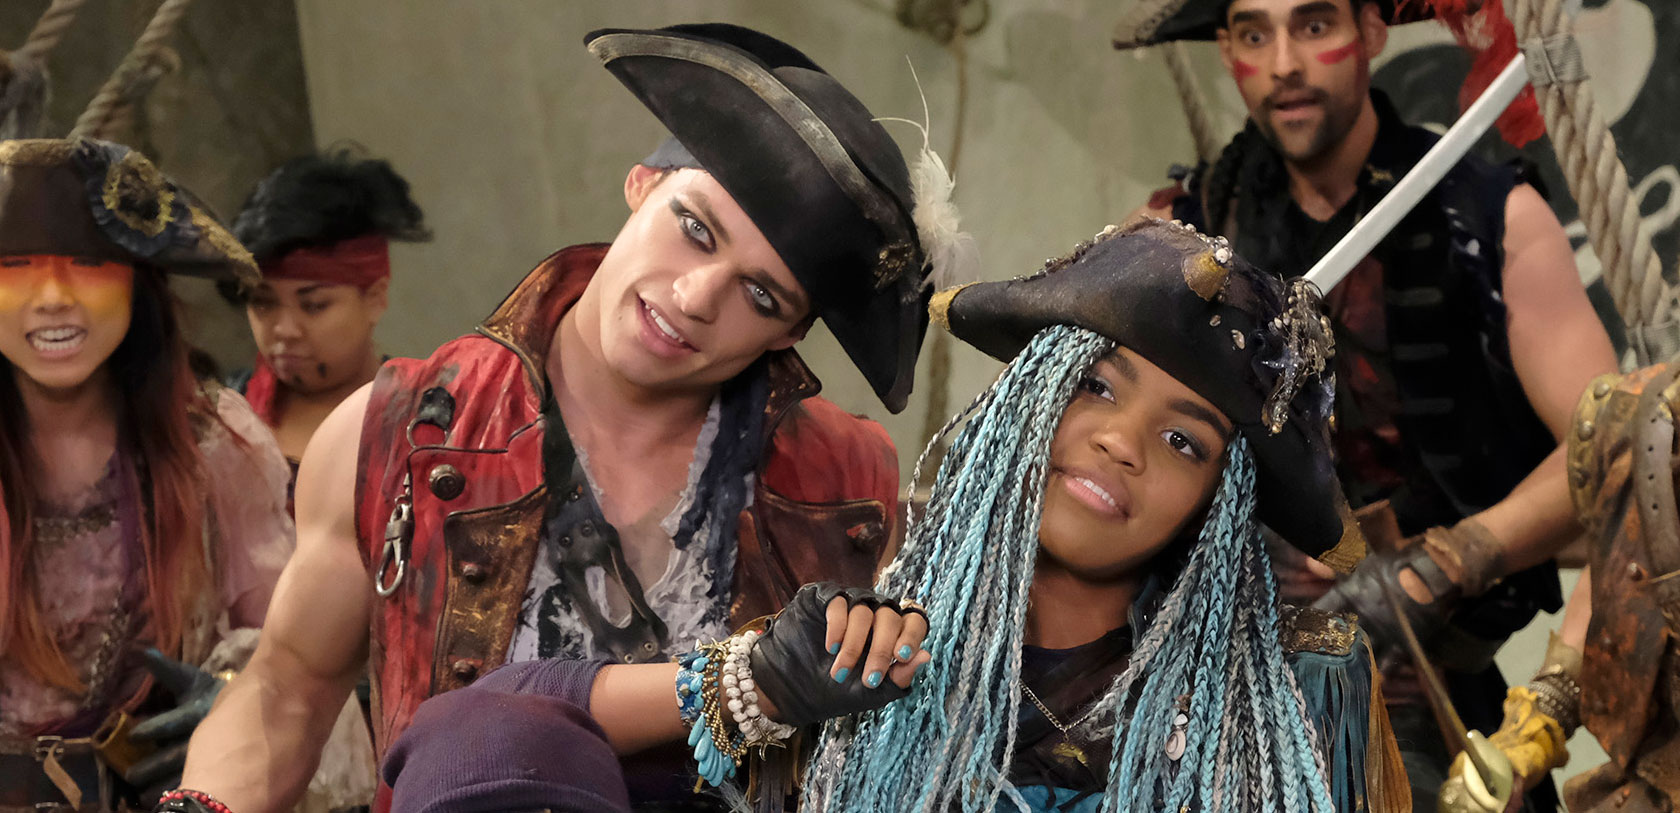 China mcclain breaking news and photos just jared jr page 5 -  Vk S Exclusive China Mcclain Descendants Dove Cameron Dylan Playfair Exclusive Interview Sofia Carson Thomas Doherty Just Jared Jr